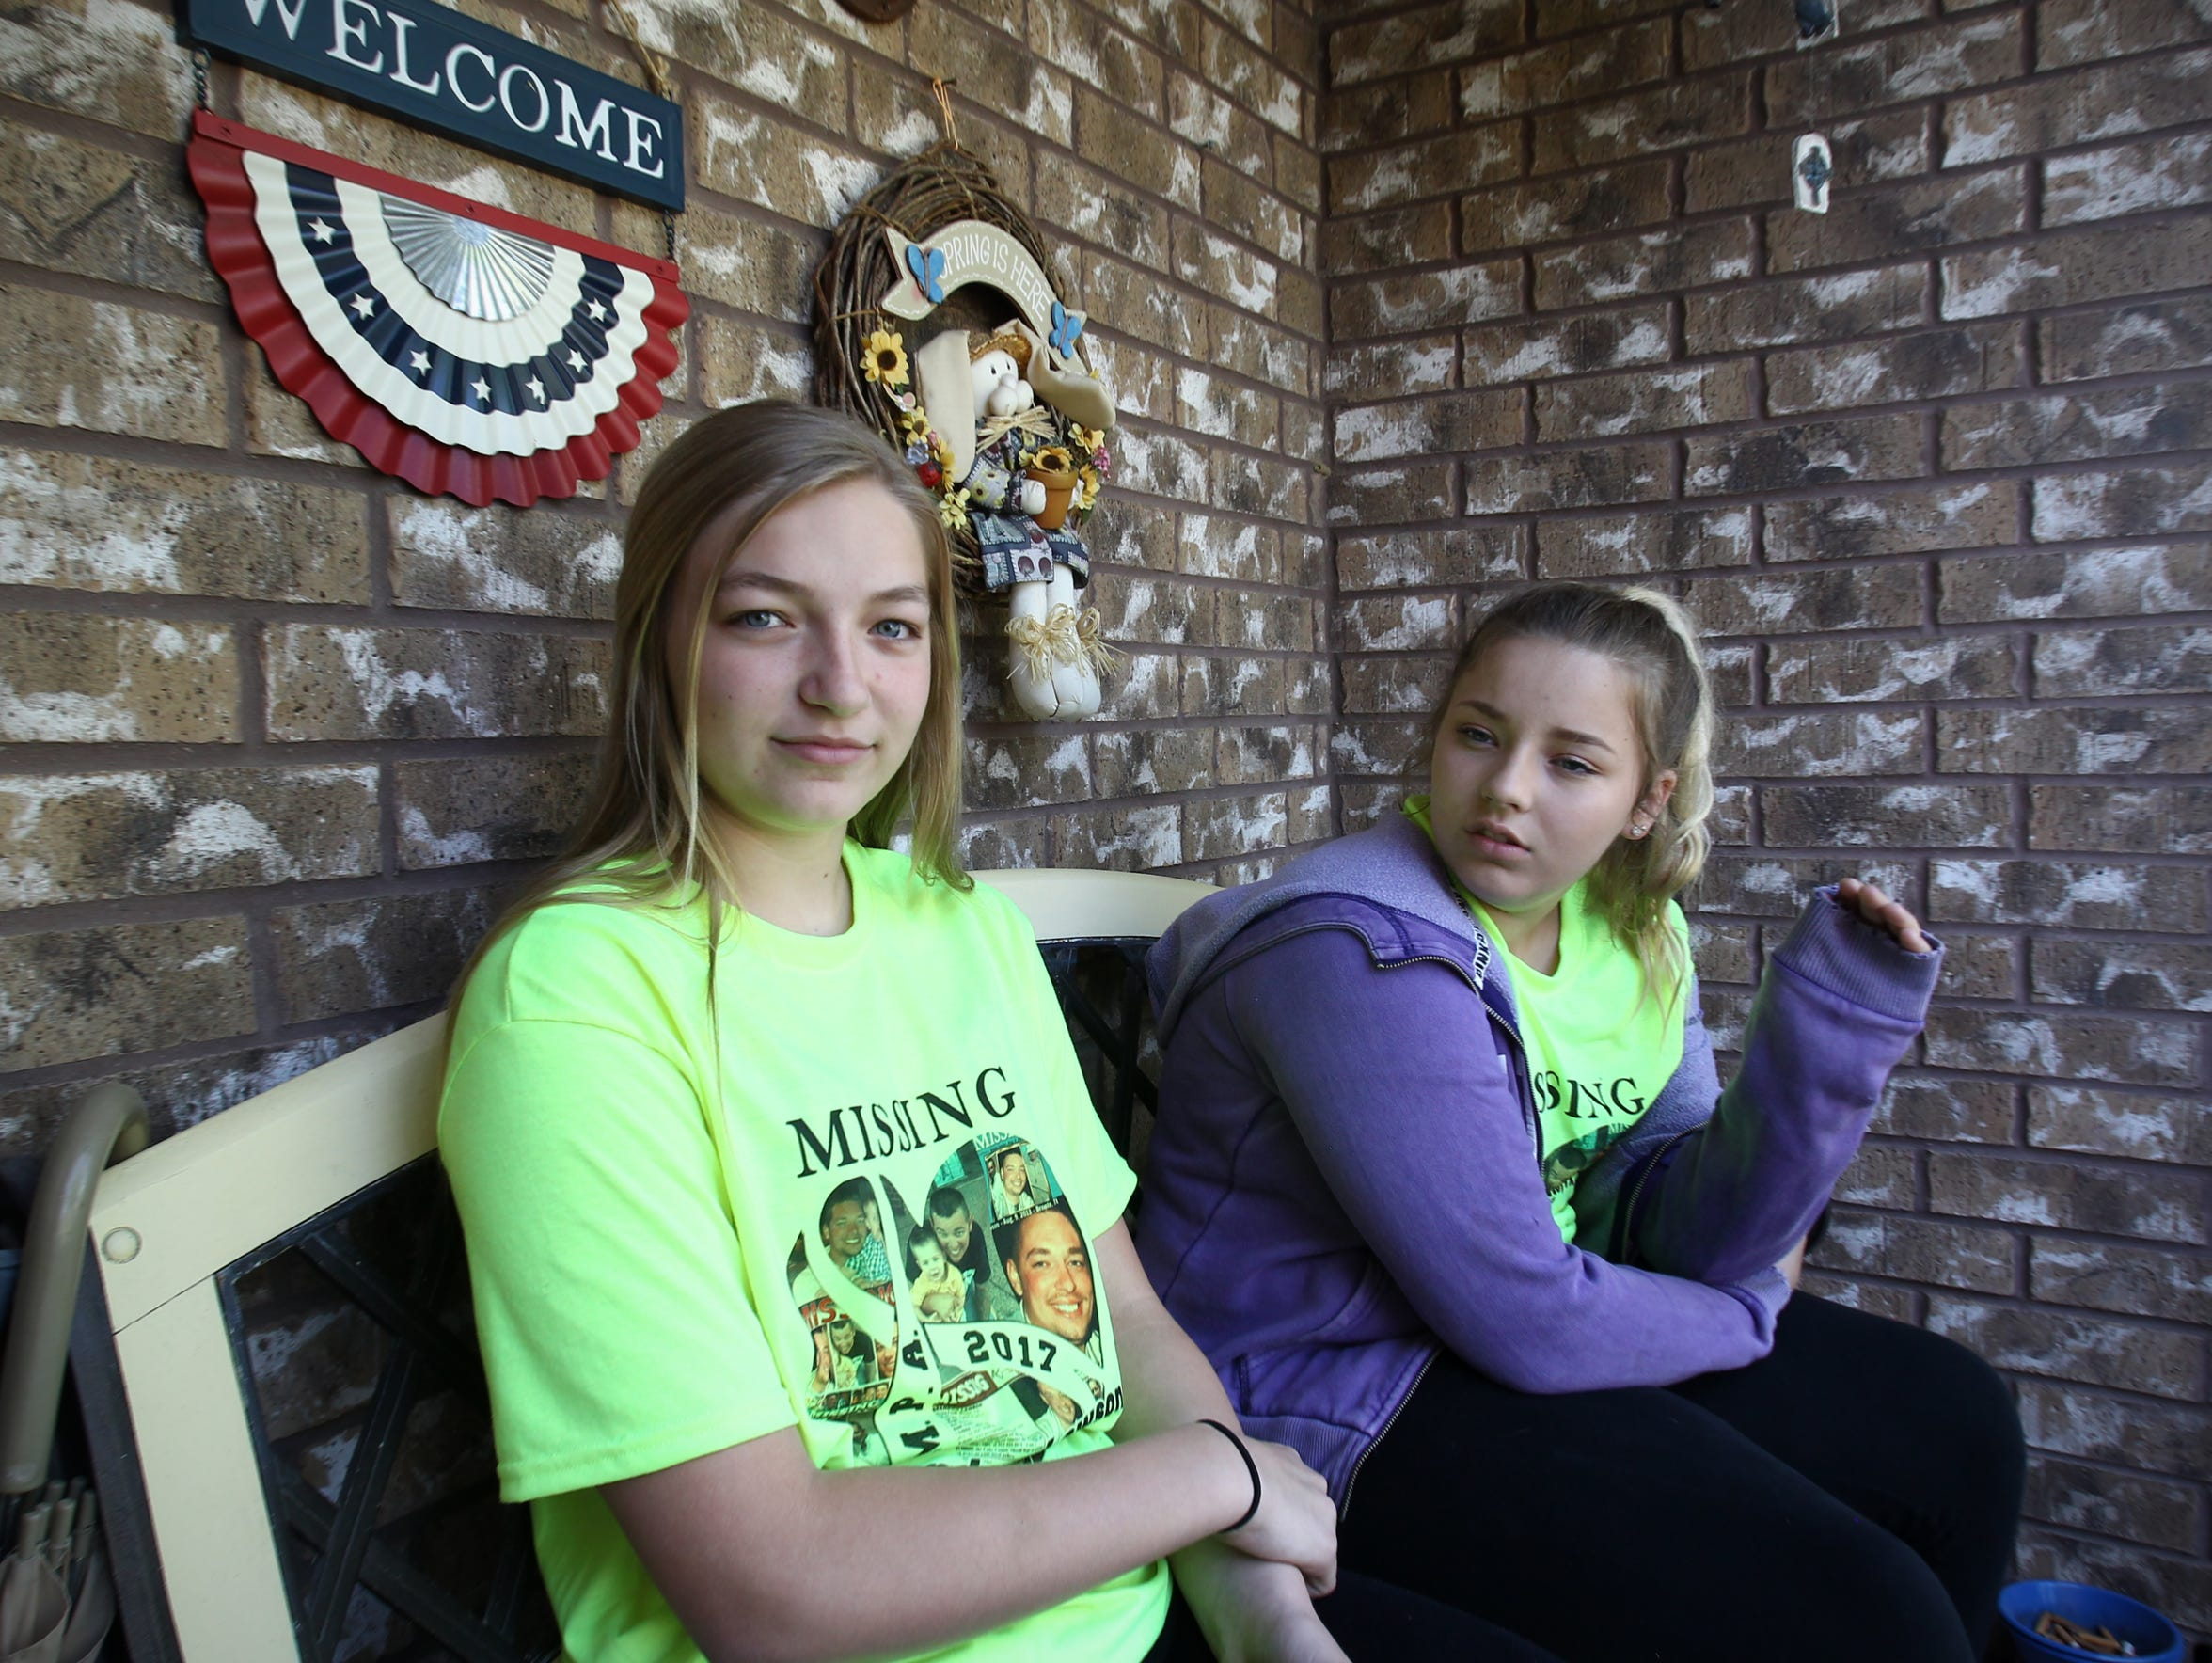 McKenzie Starks, 14, and Destiny Lawson, 11, sit outside